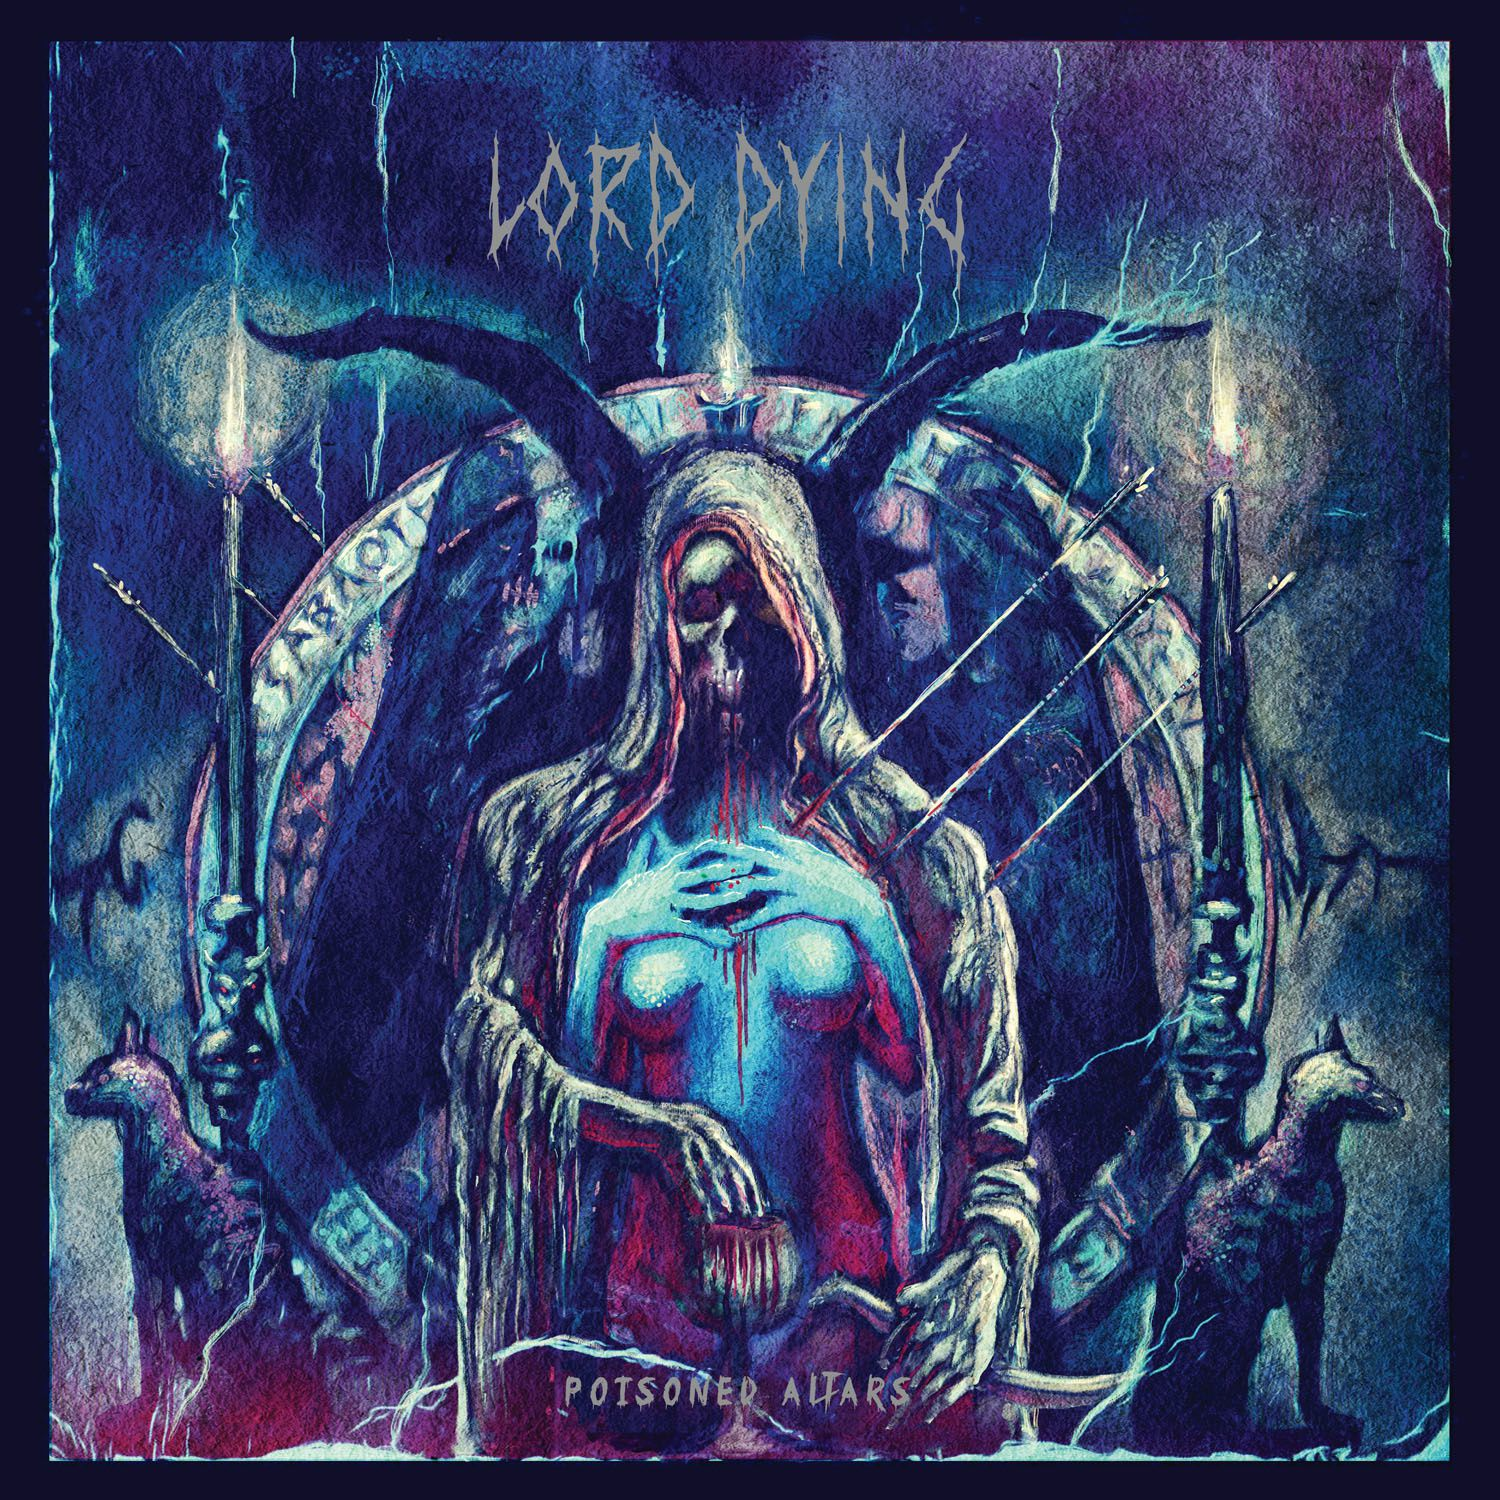 """CD review LORD DYING """"Poisoned altars"""""""